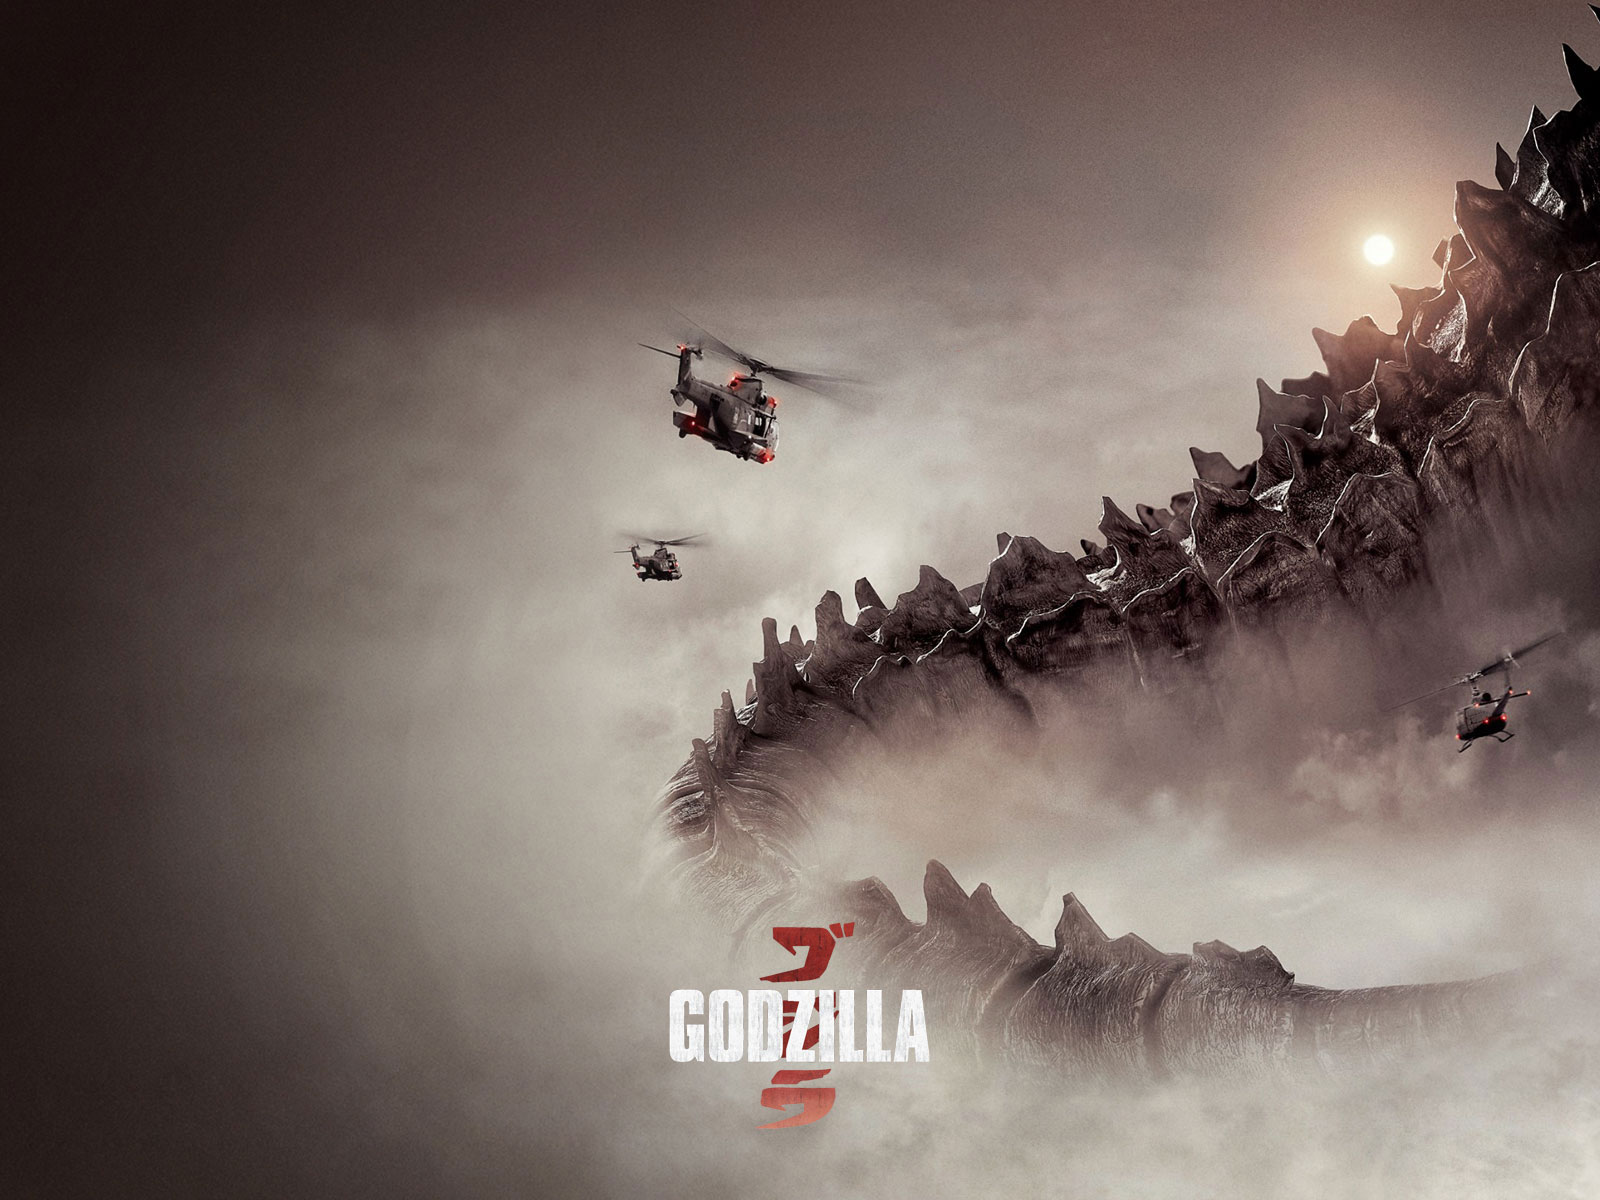 Godzilla Movie 2014 HD iPhone amp iPad Wallpapers 1600x1200